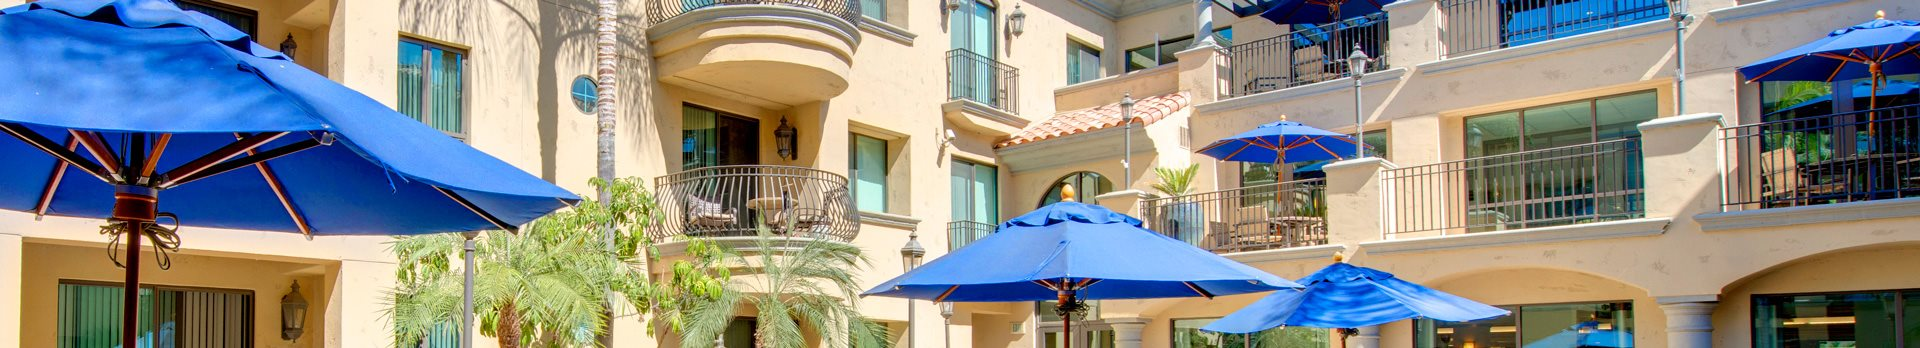 Apartment Home Maintenance Staff on-site at Pacifica Senior Living Hillsborough, California